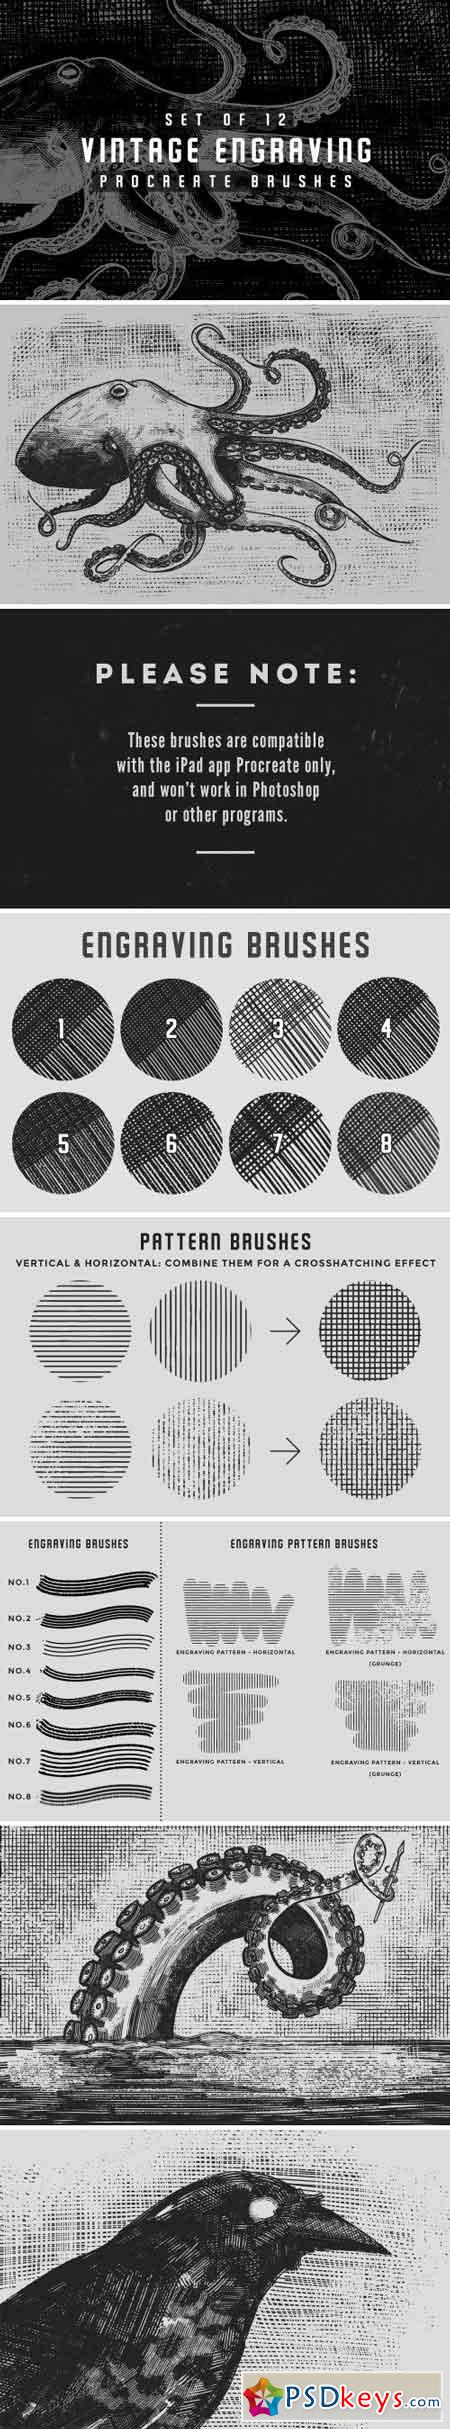 Vintage engraving Procreate brushes 1579224